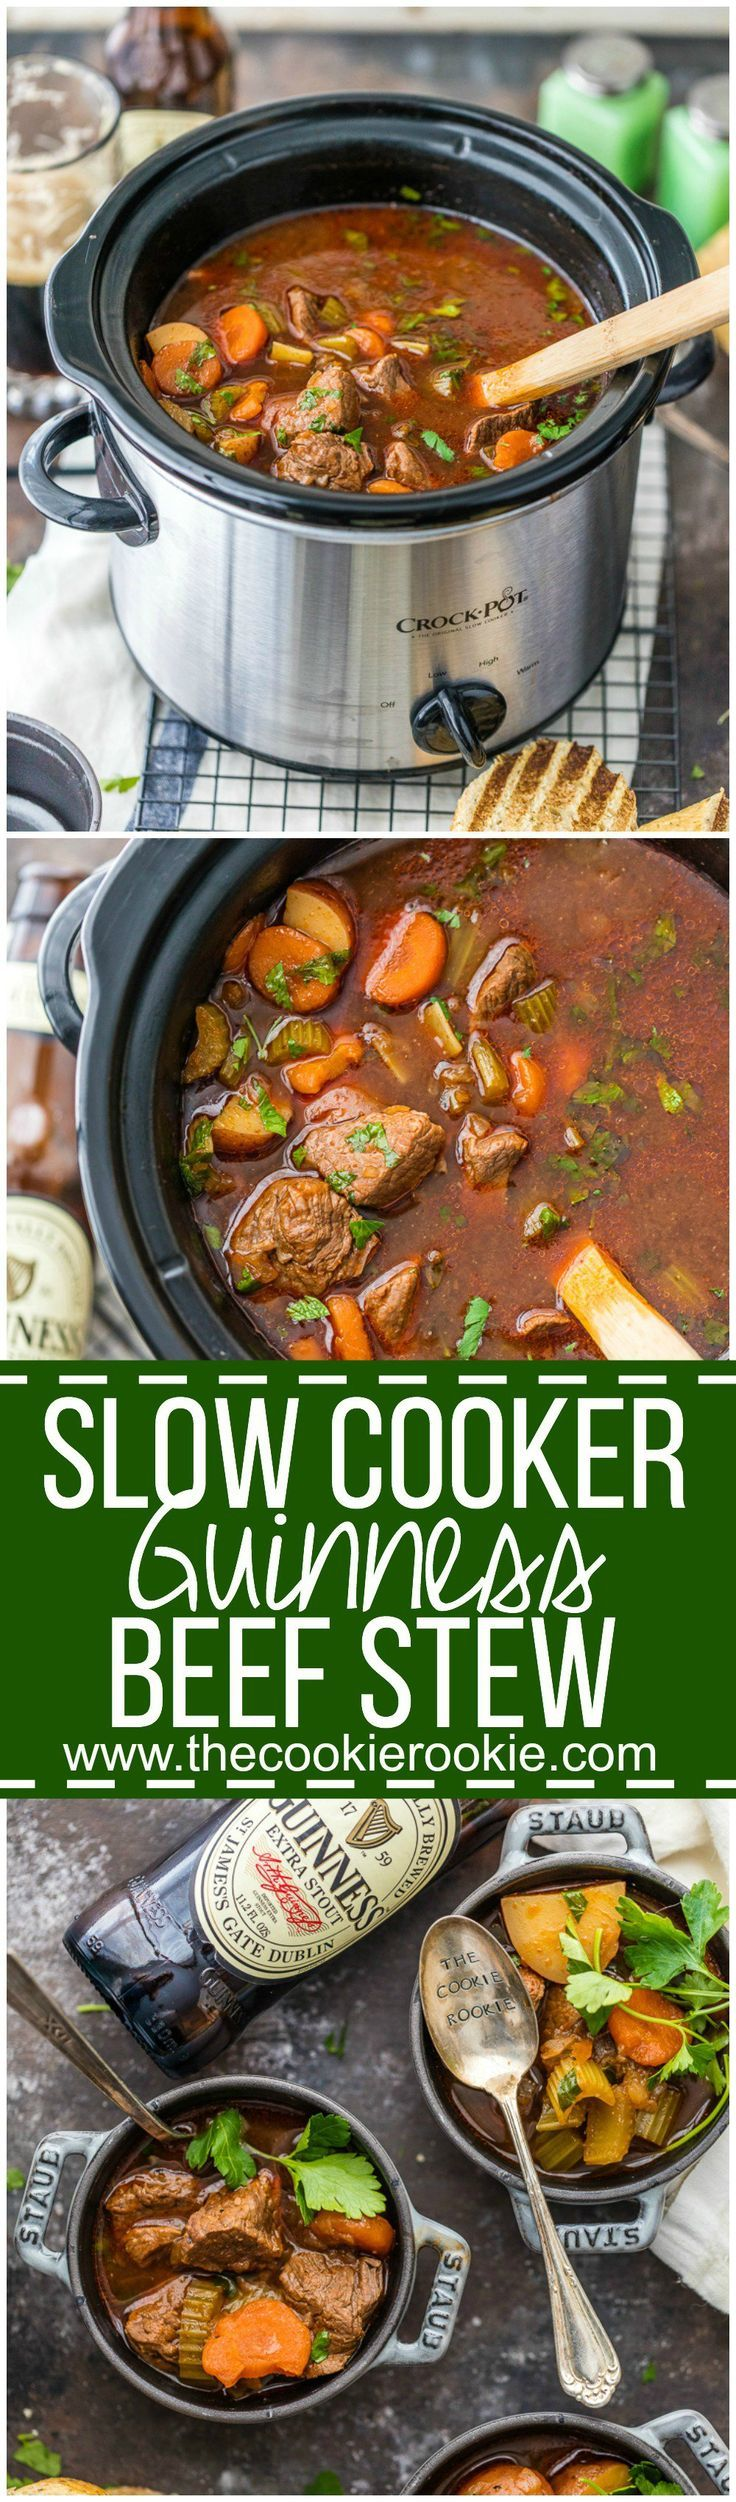 Slow Cooker Guinness Beef Stew FoodBlogs.com